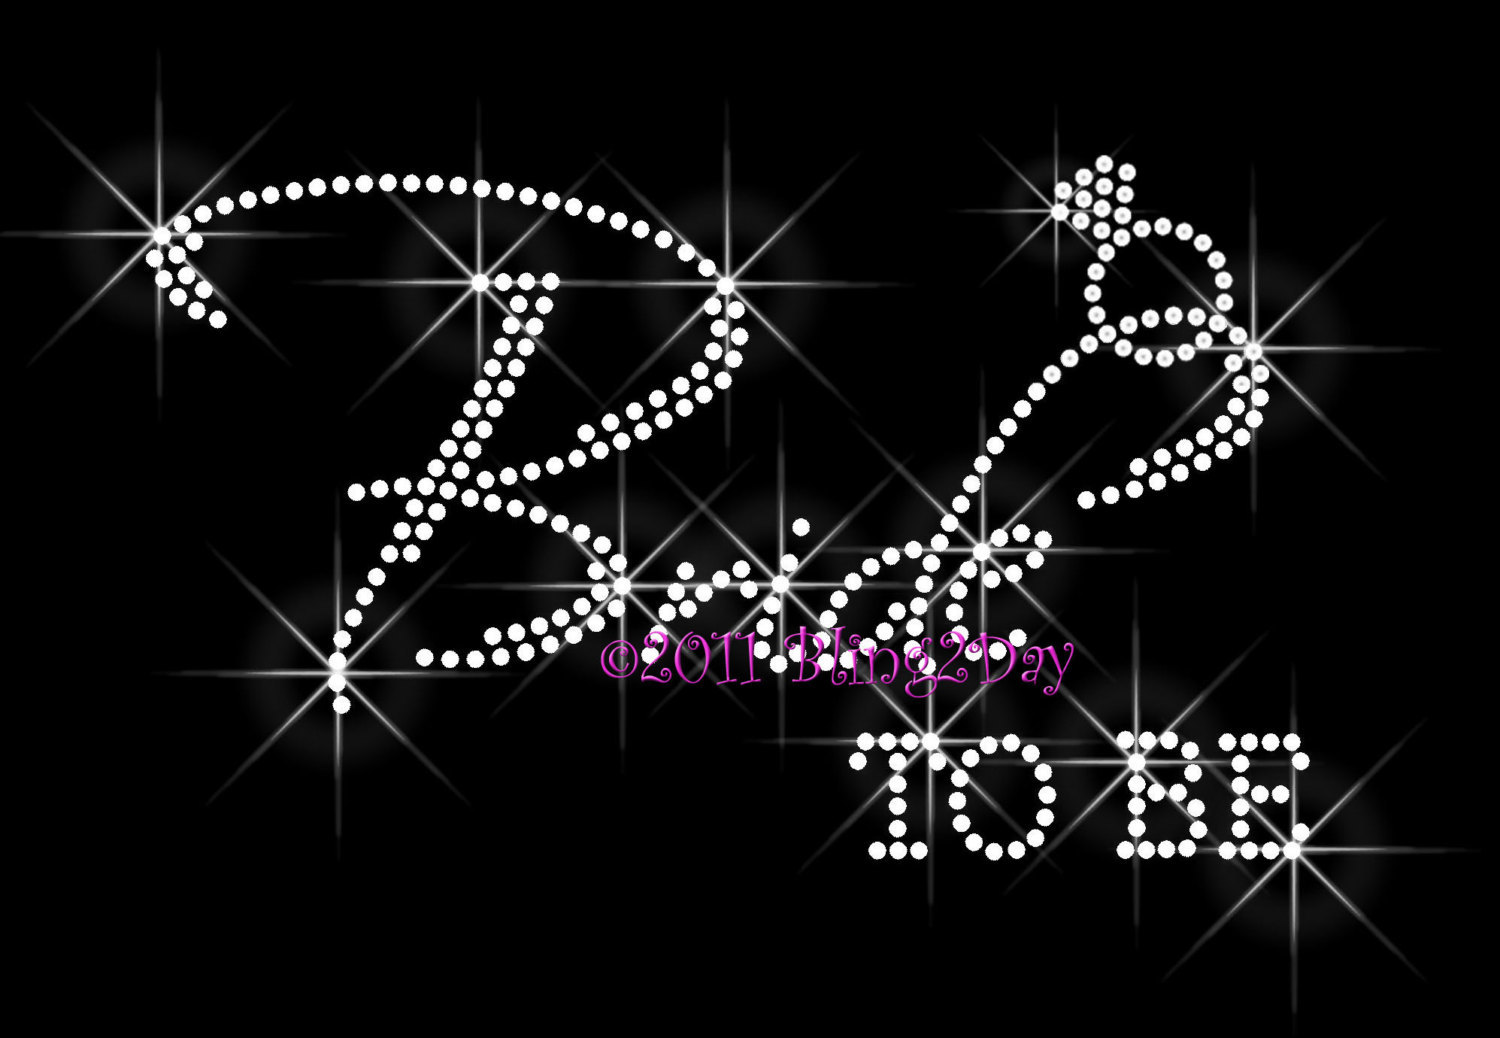 Primary image for Bride To Be - with Diamond Ring - Iron on Rhinestone Transfer Bling Hot Fix